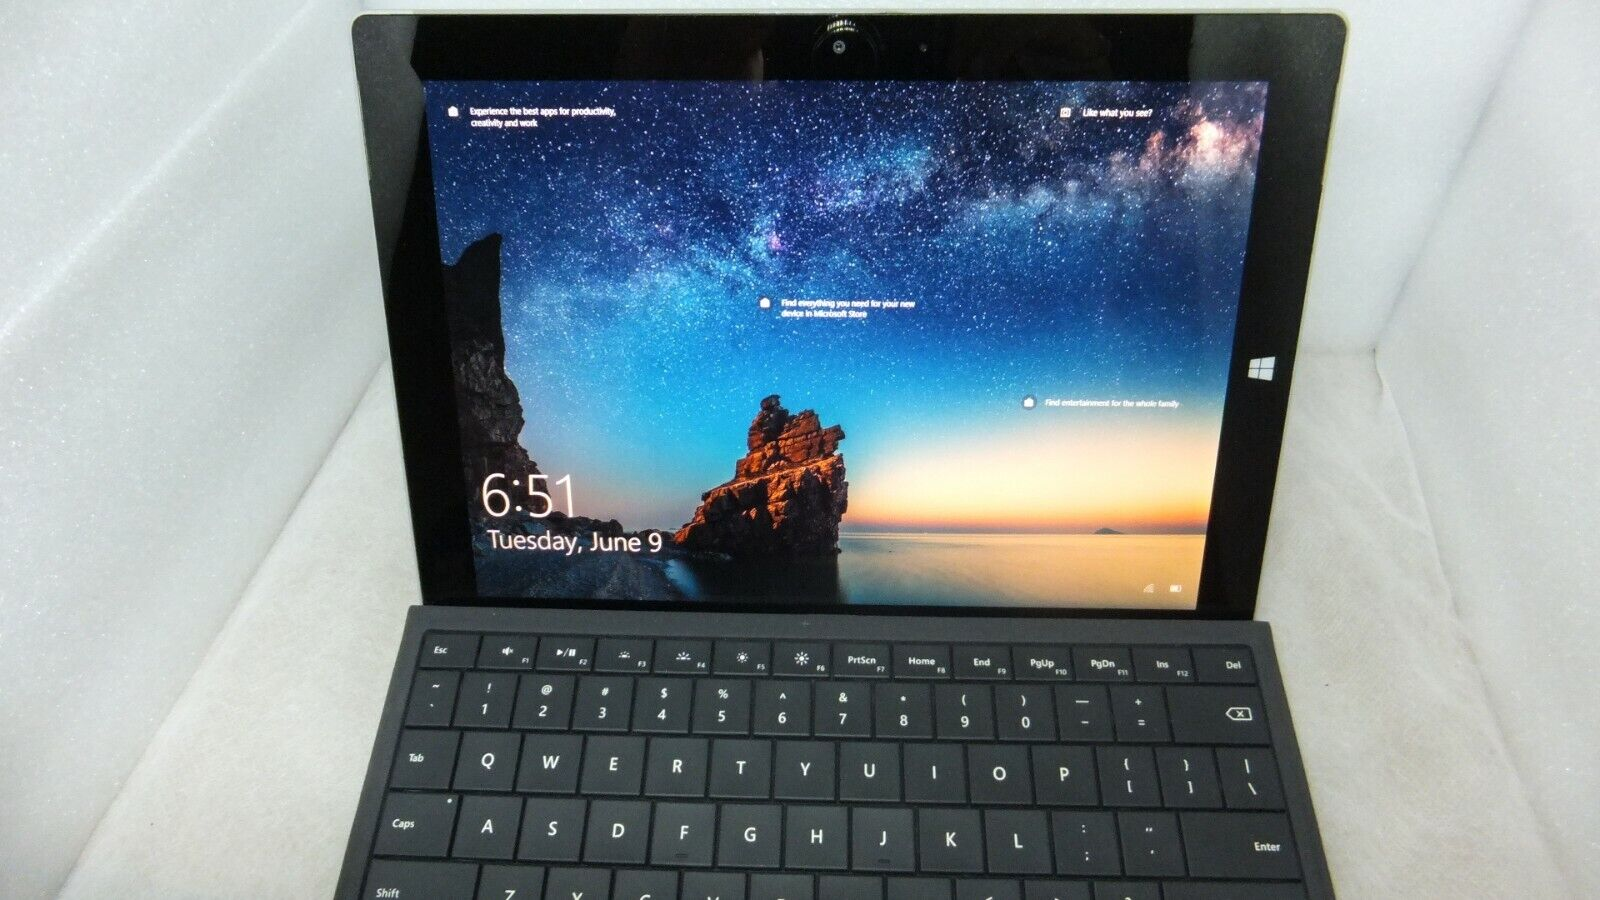 Microsoft Surface 3 - 64GB / Backlit Keyboard And Charger Included - $89.95